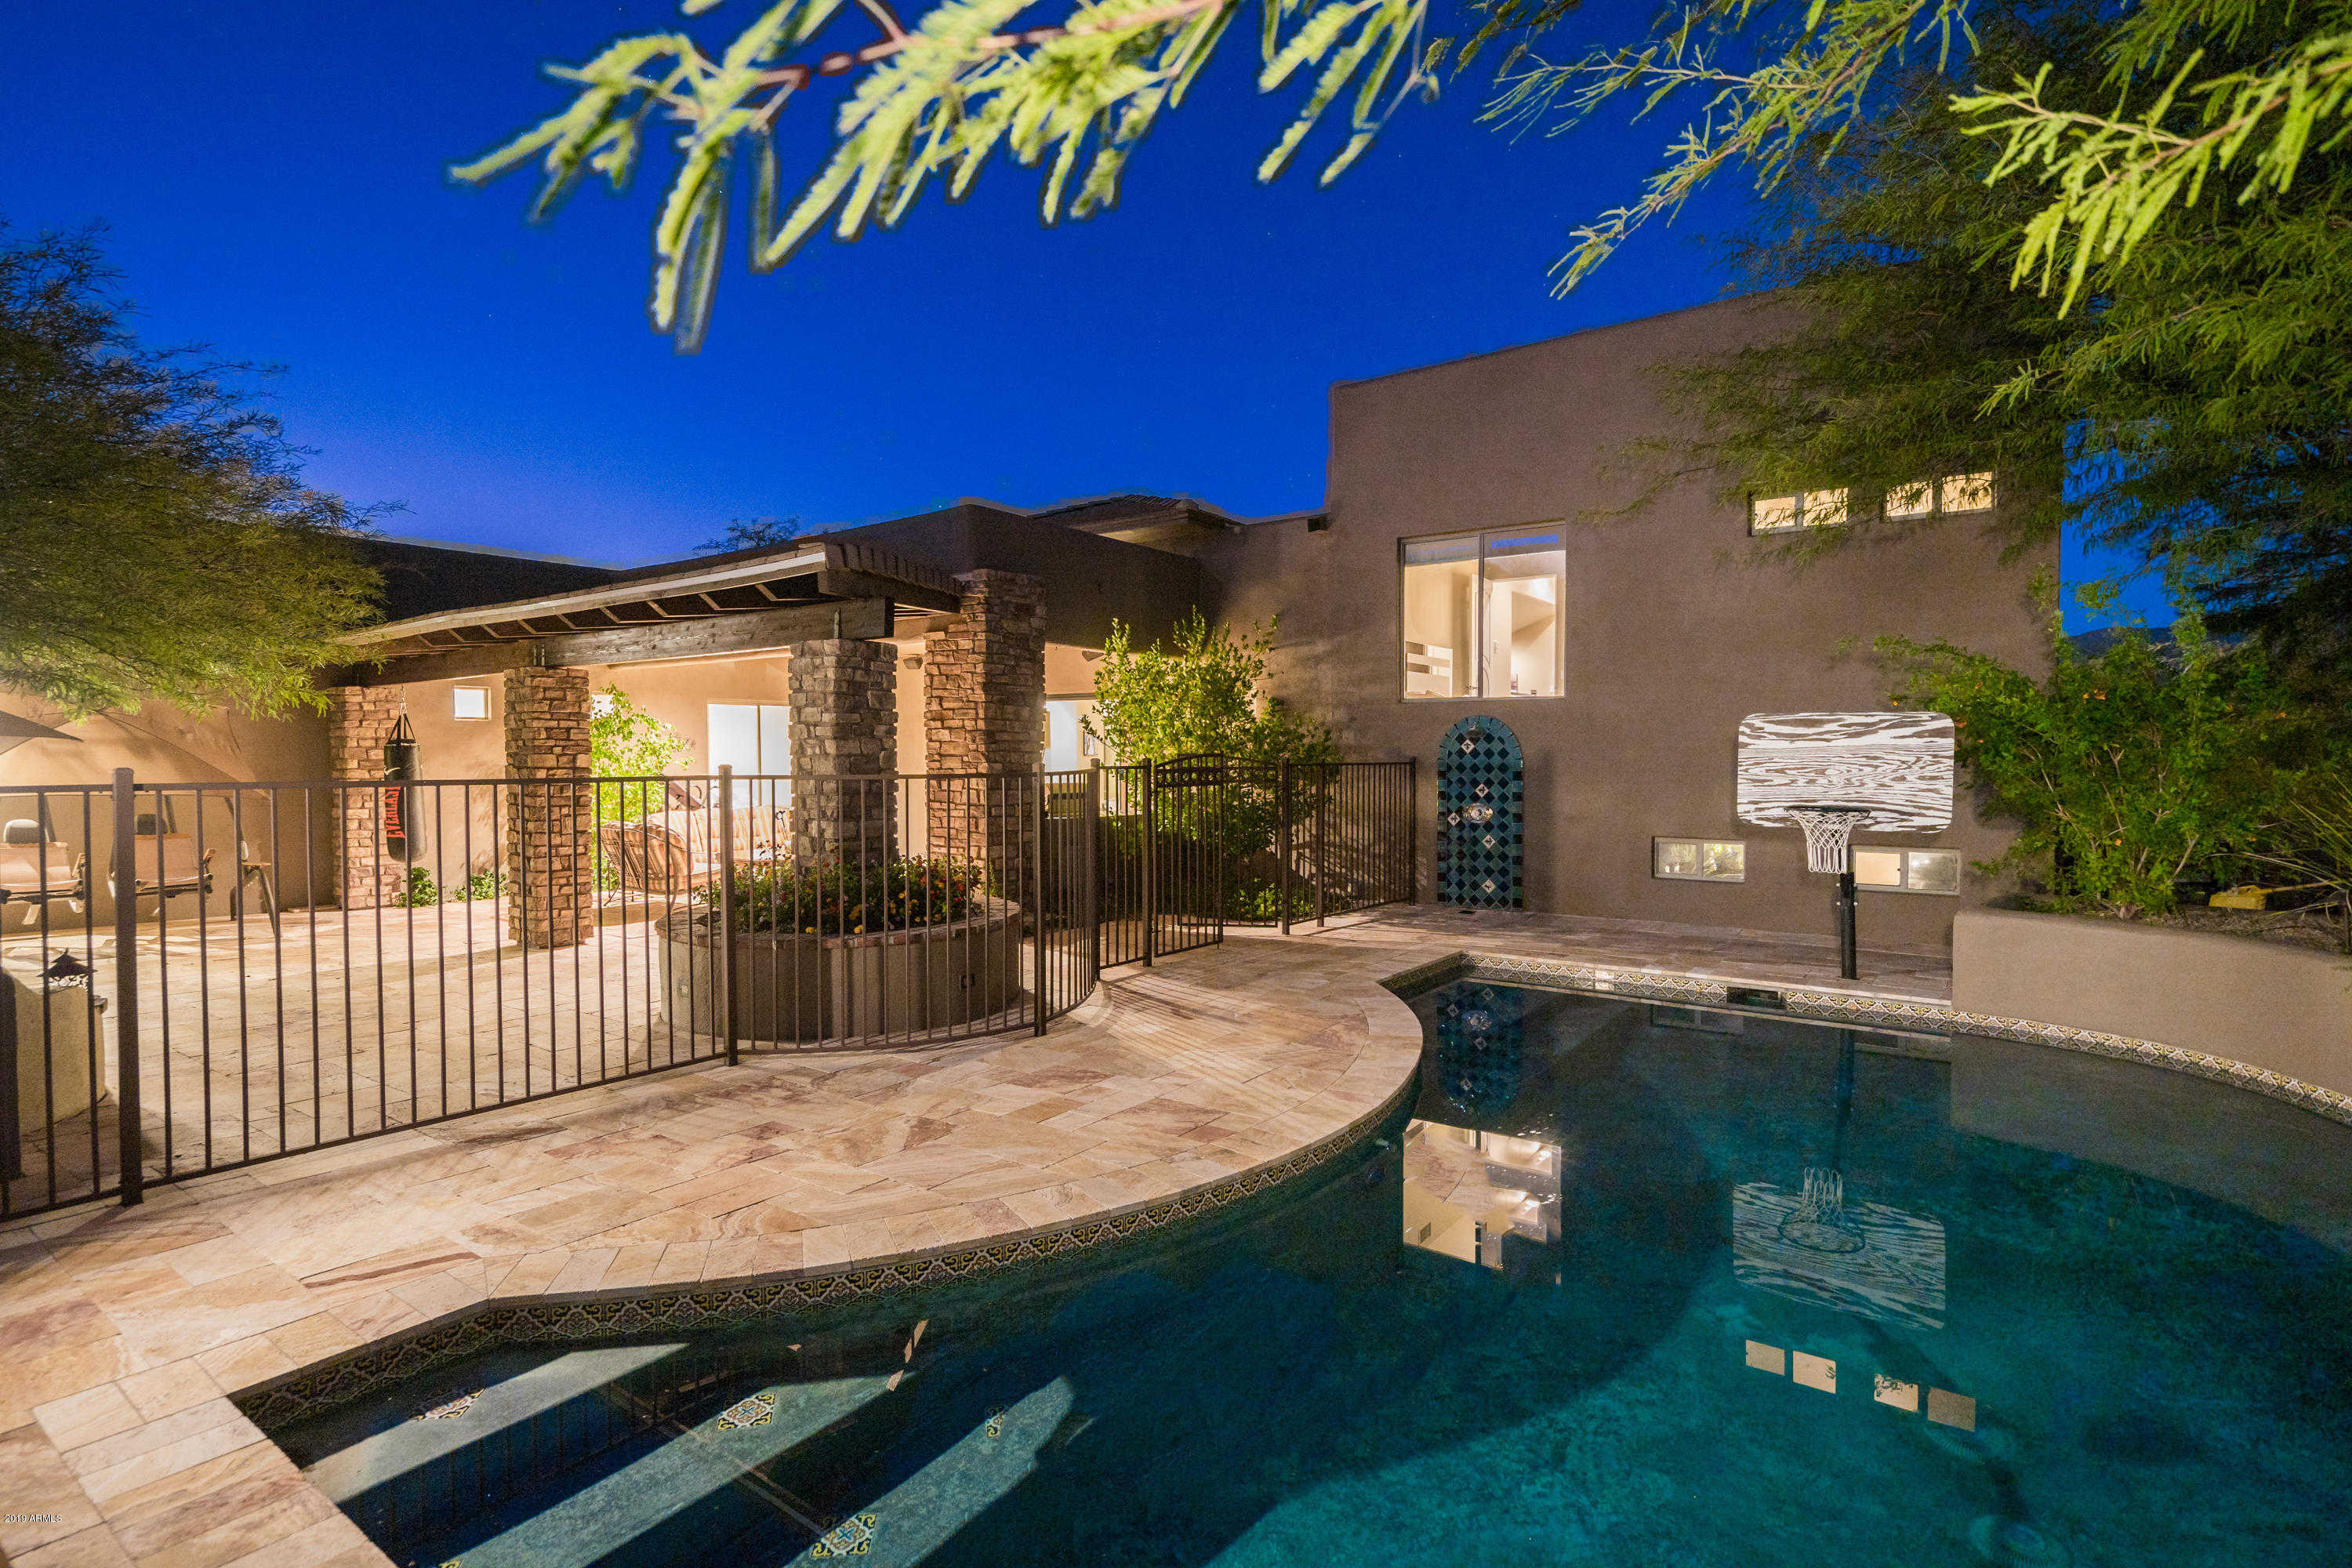 $1,099,000 - 4Br/5Ba - Home for Sale in Ridgeview Estates, Carefree